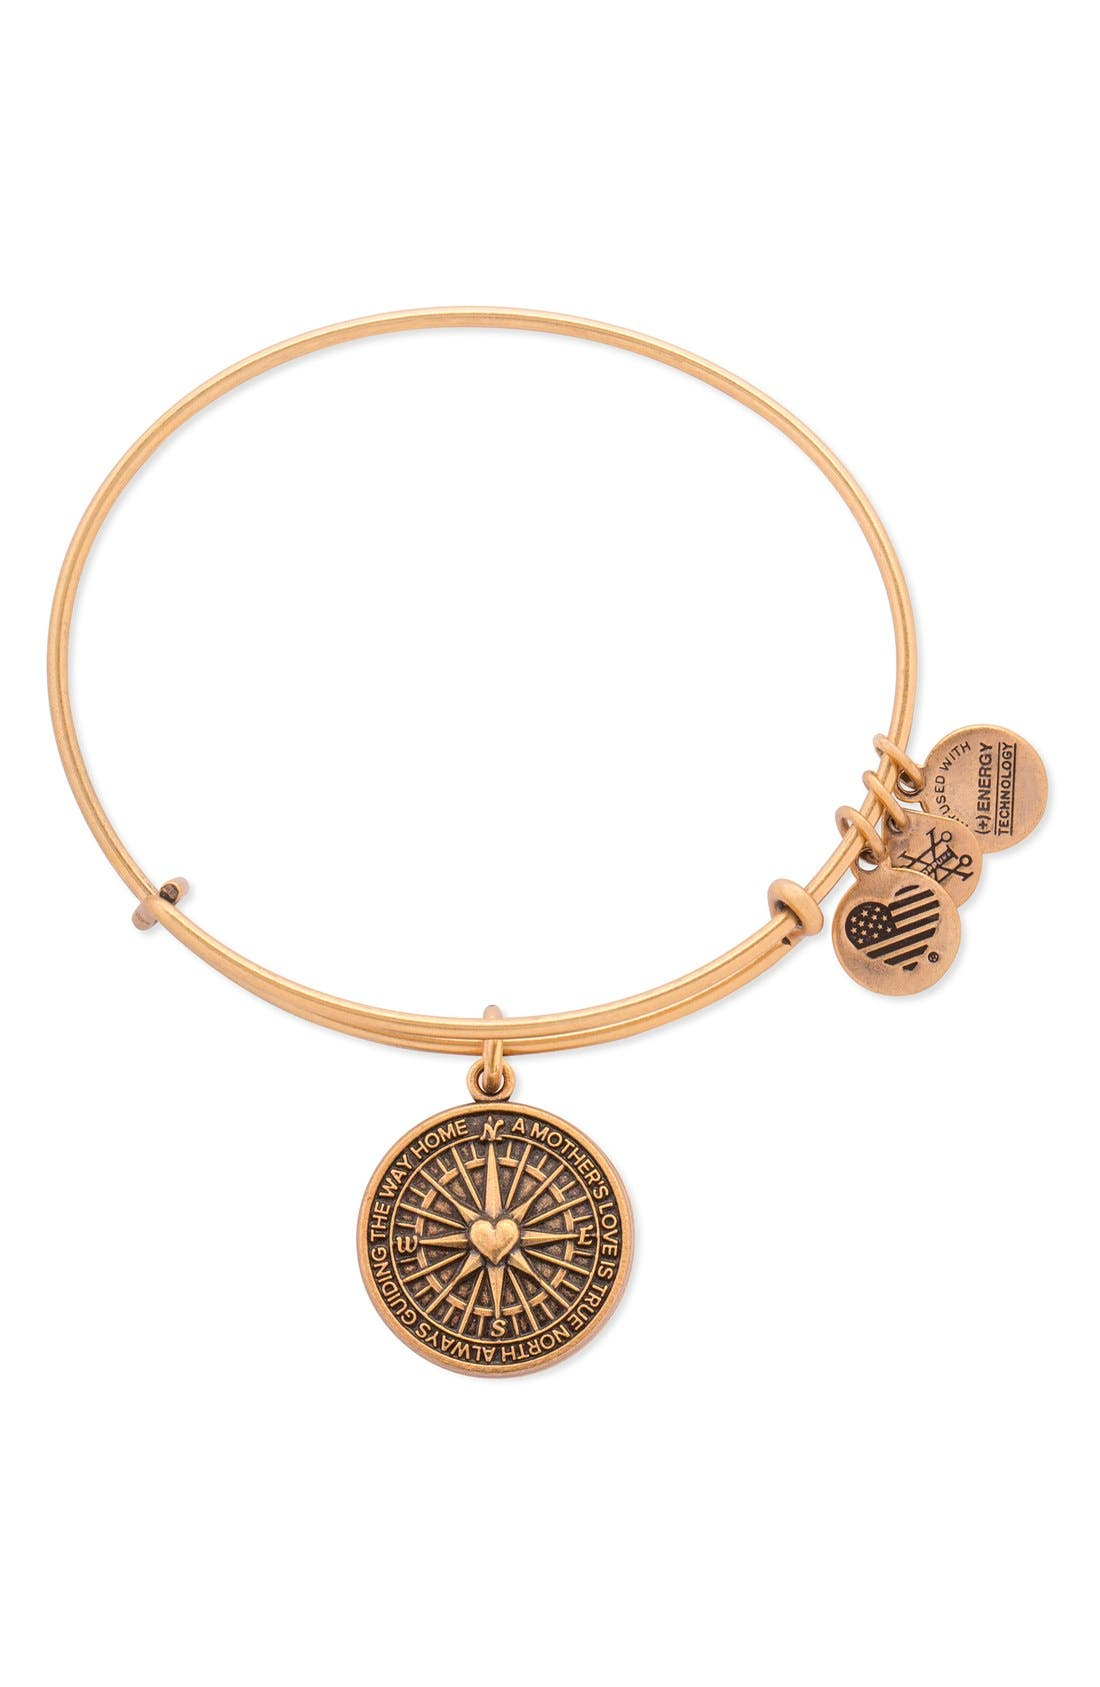 Alternate Image 1 Selected - Alex and Ani 'True Direction' Adjustable Wire Bangle